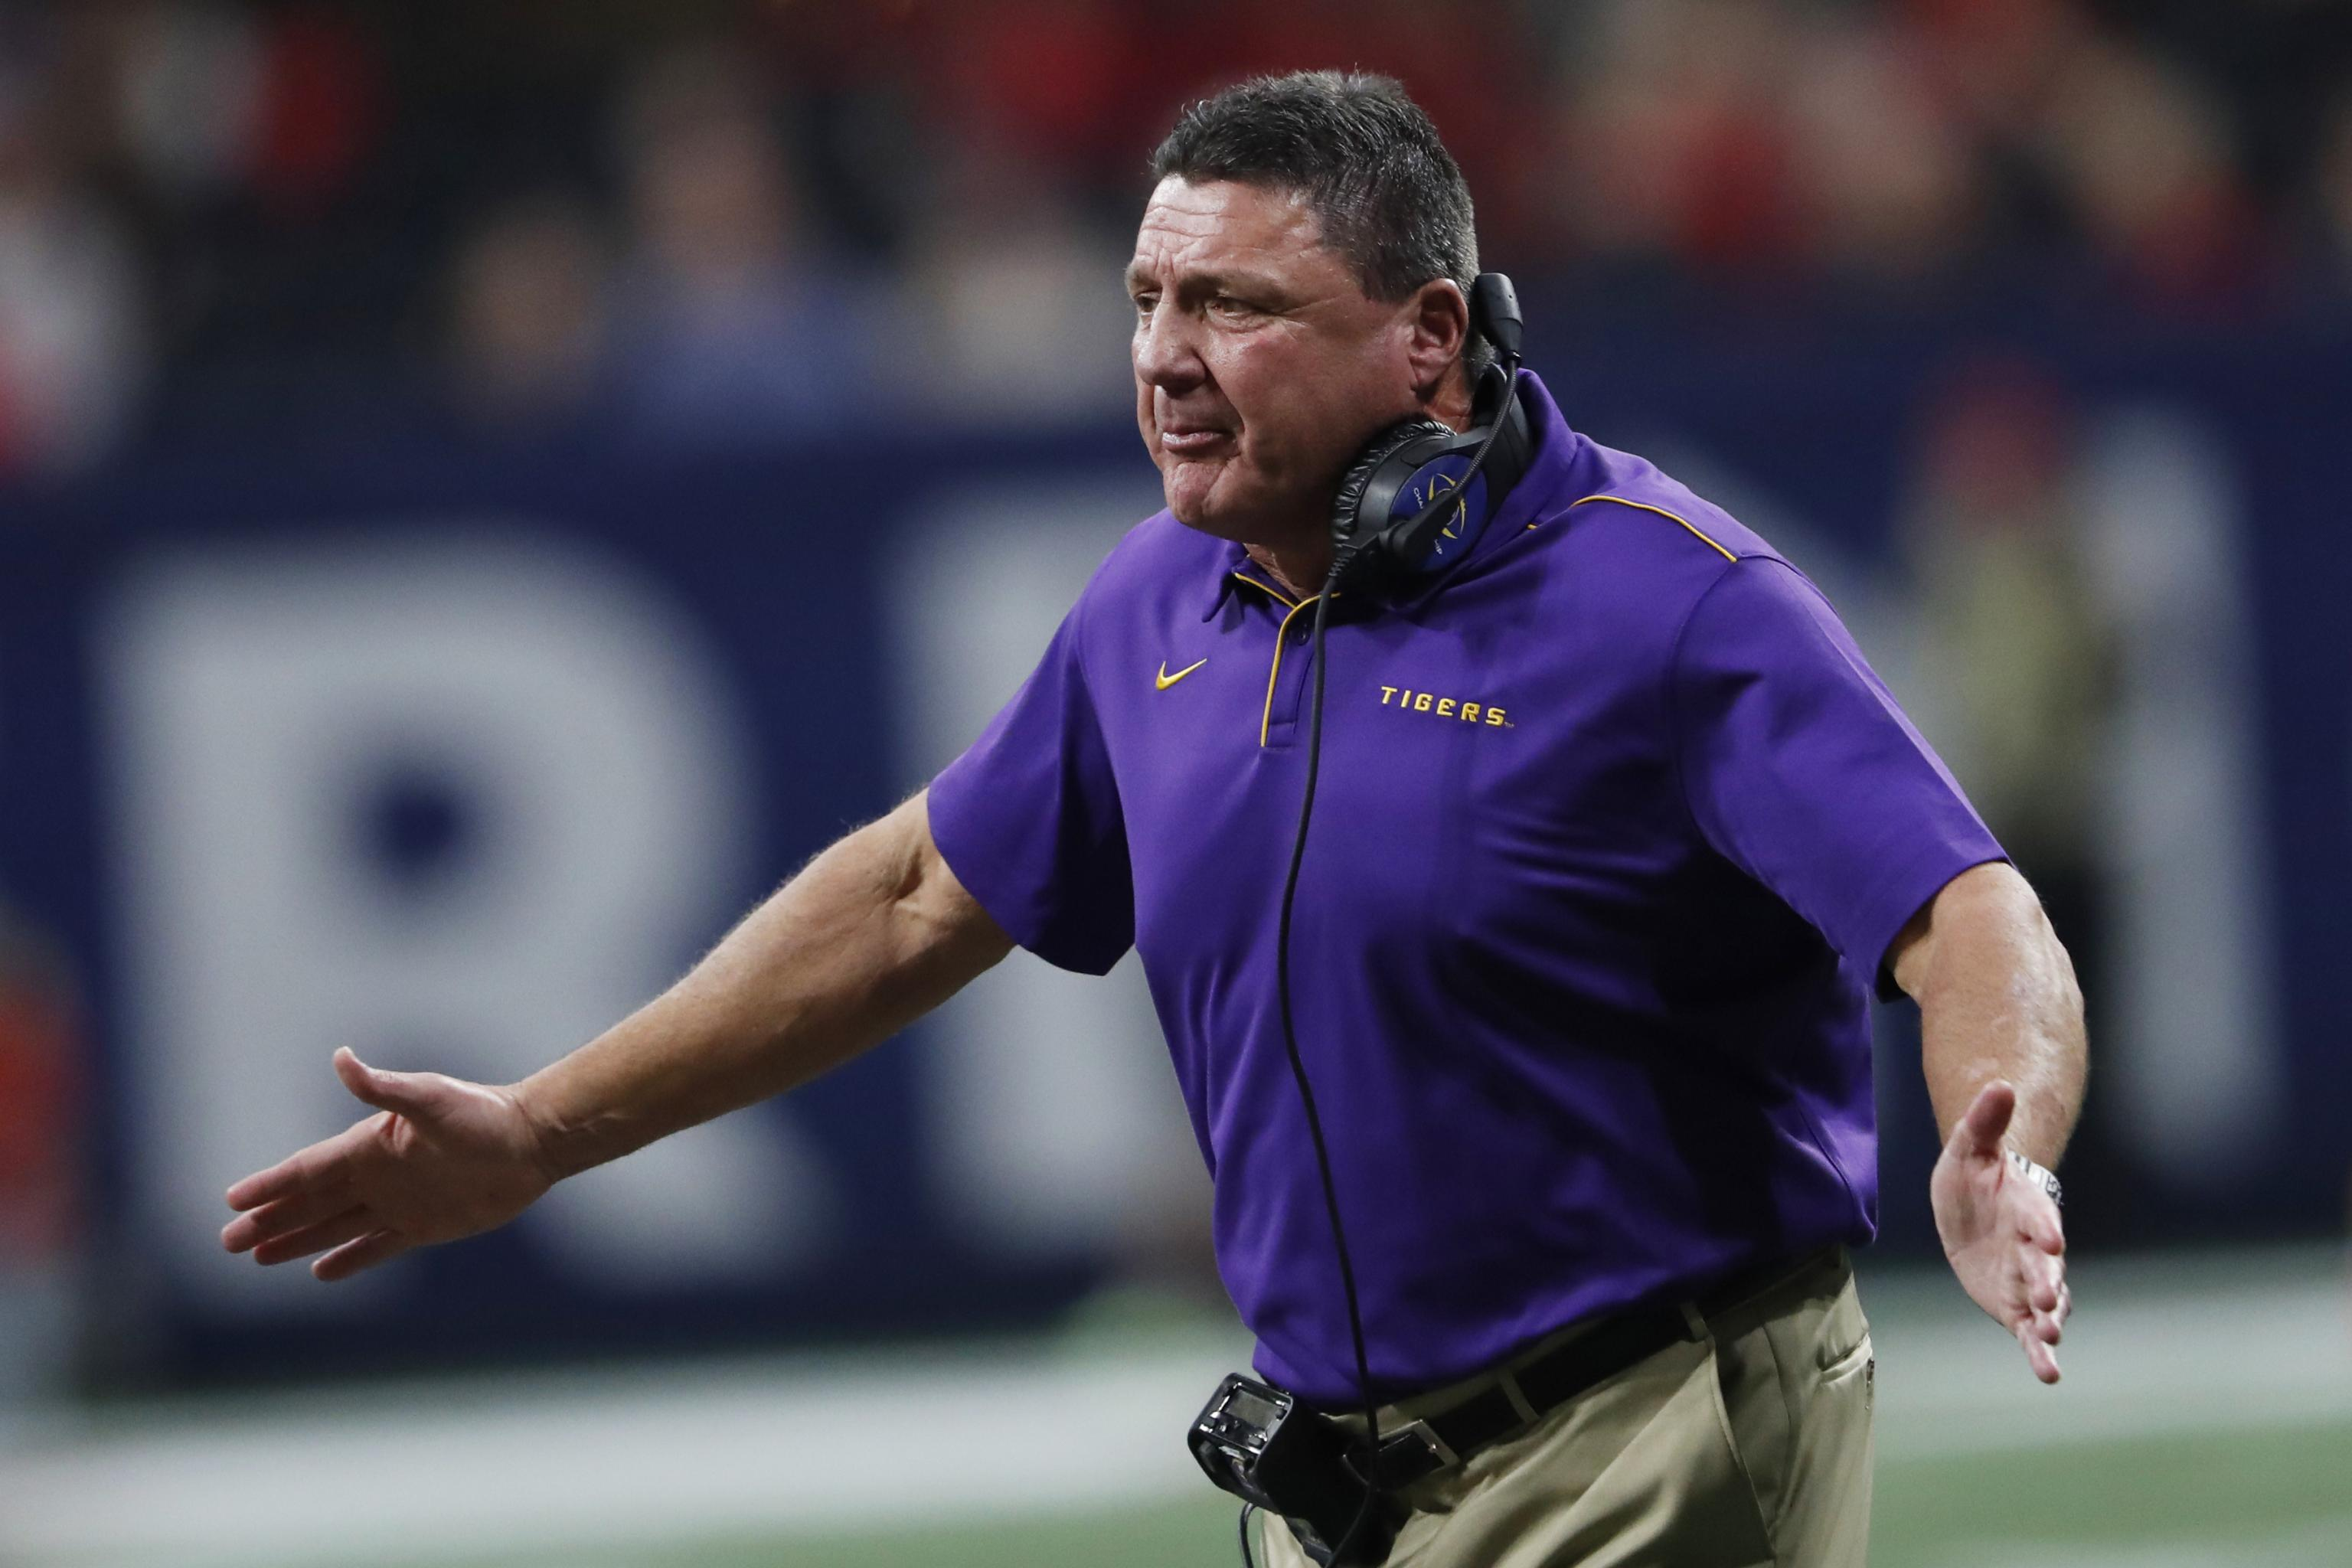 LSU's Ed Orgeron Volunteers to Take $300K Pay Cut for 2021 Season | Bleacher Report | Latest News, Videos and Highlights